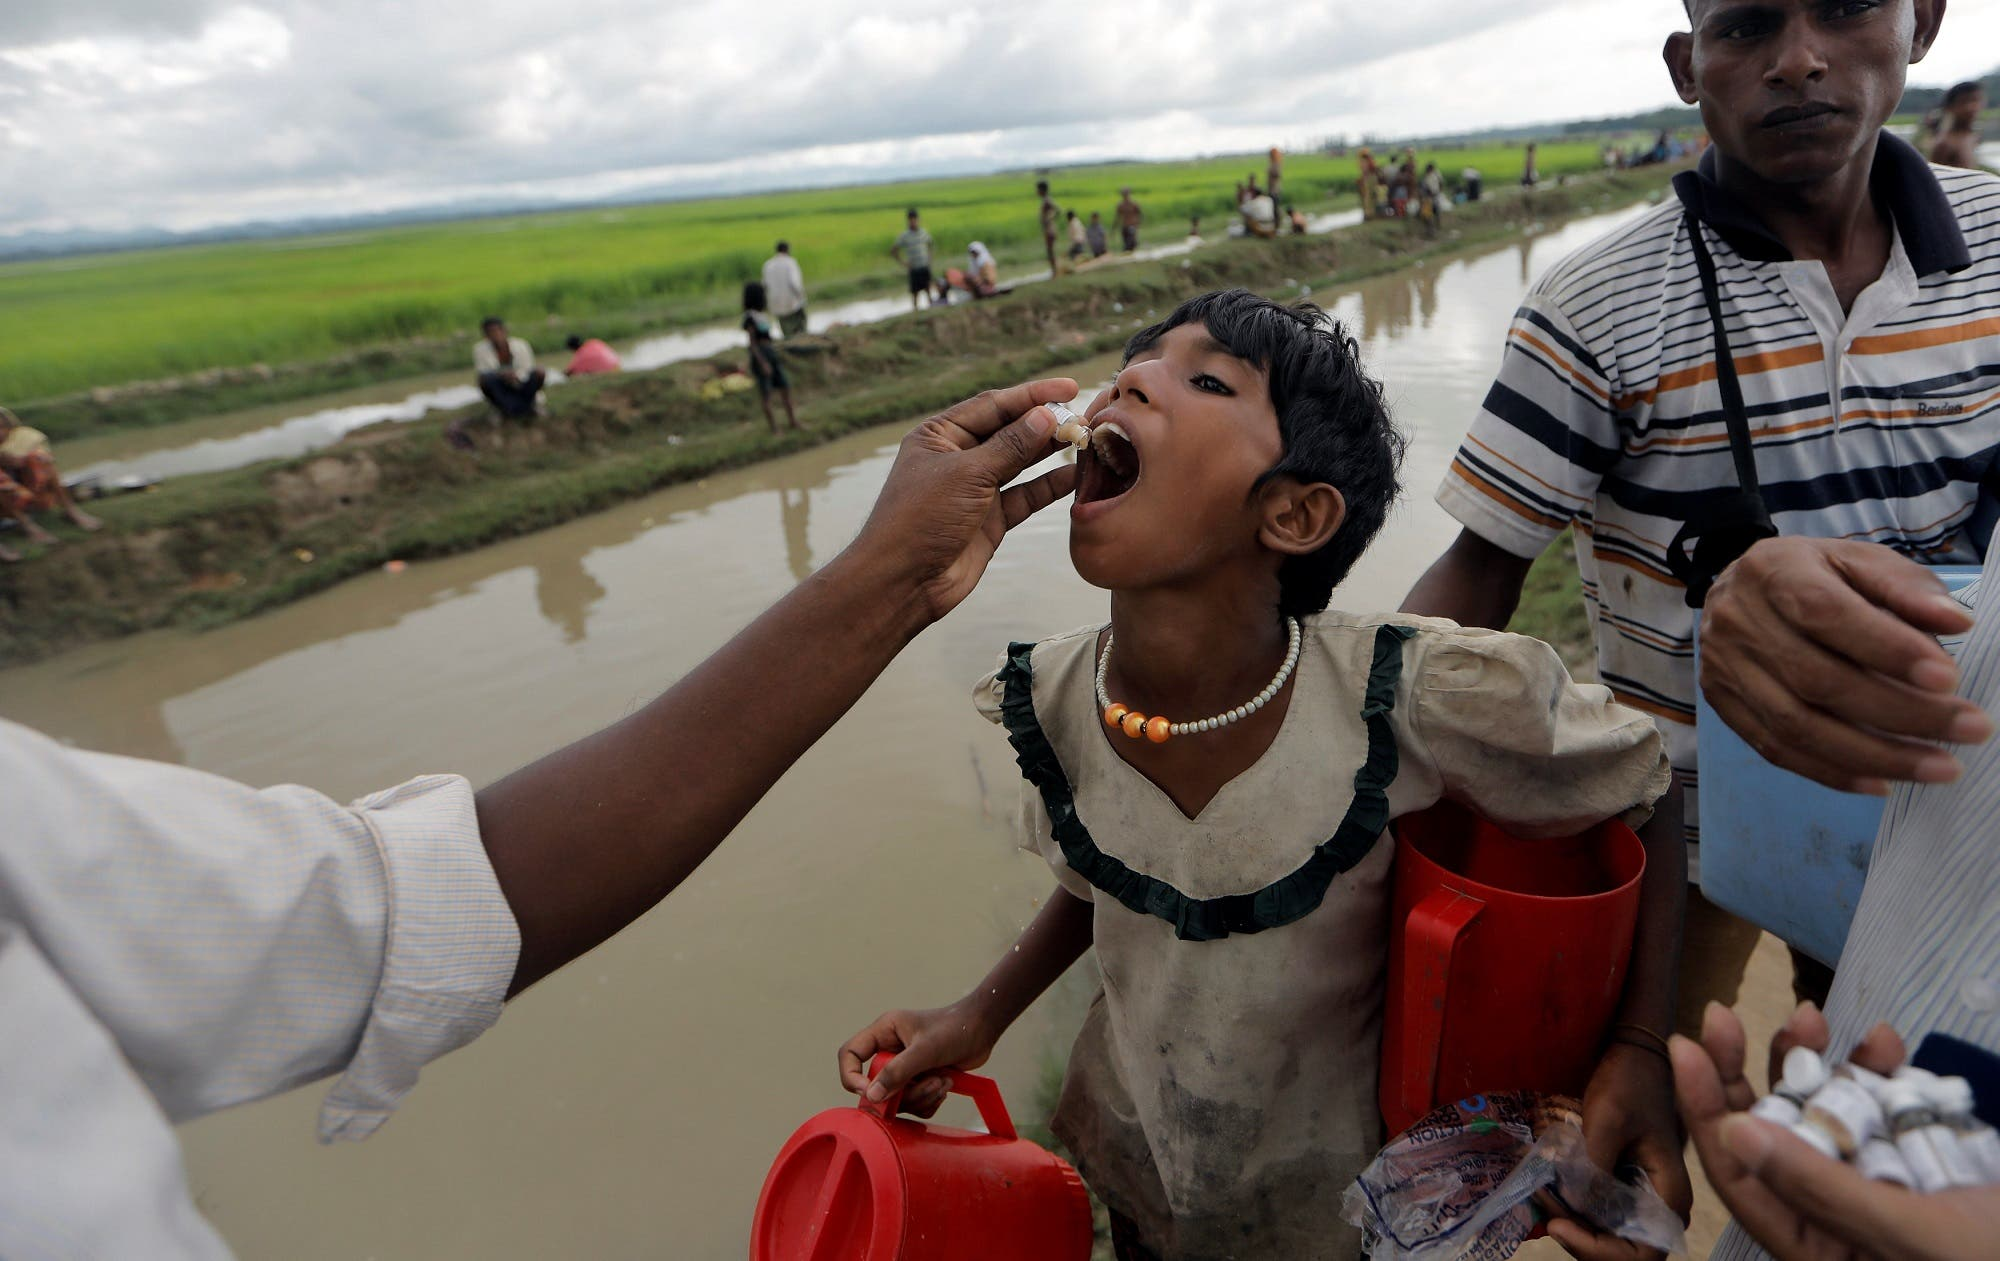 A Rohingya refugee gets an oral cholera vaccine in Palang Khali, near Cox's Bazar, Bangladesh, October 17, 2017. (Reuters)